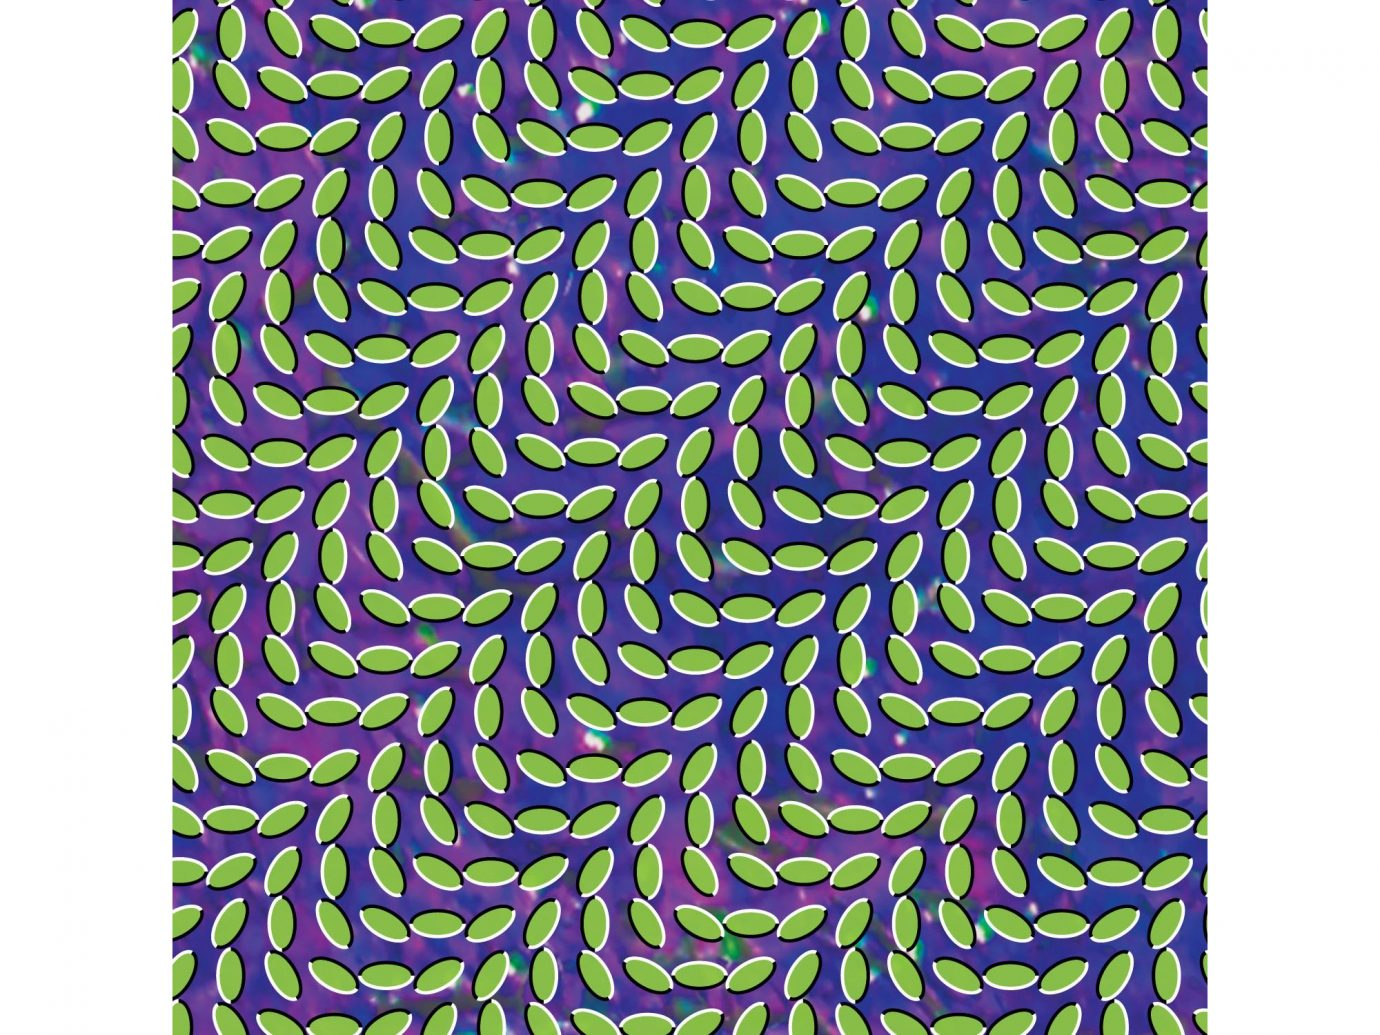 Merriweather Post Pavilion by Animal Collective